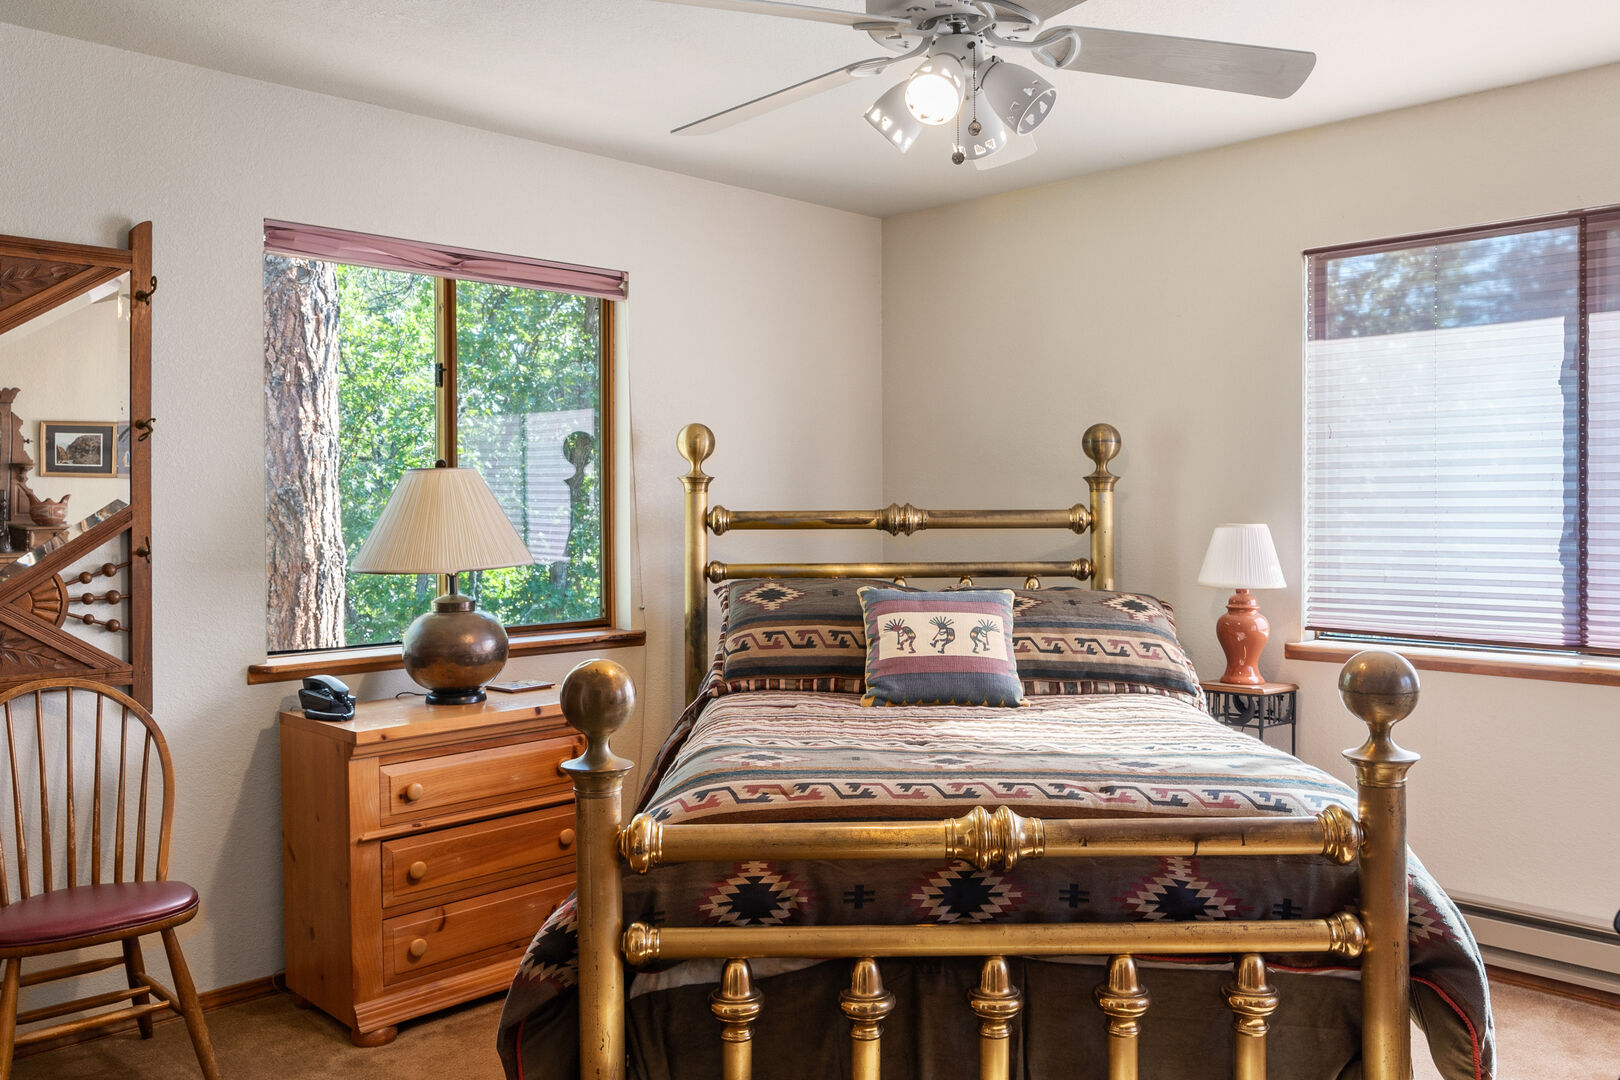 Bedroom with double